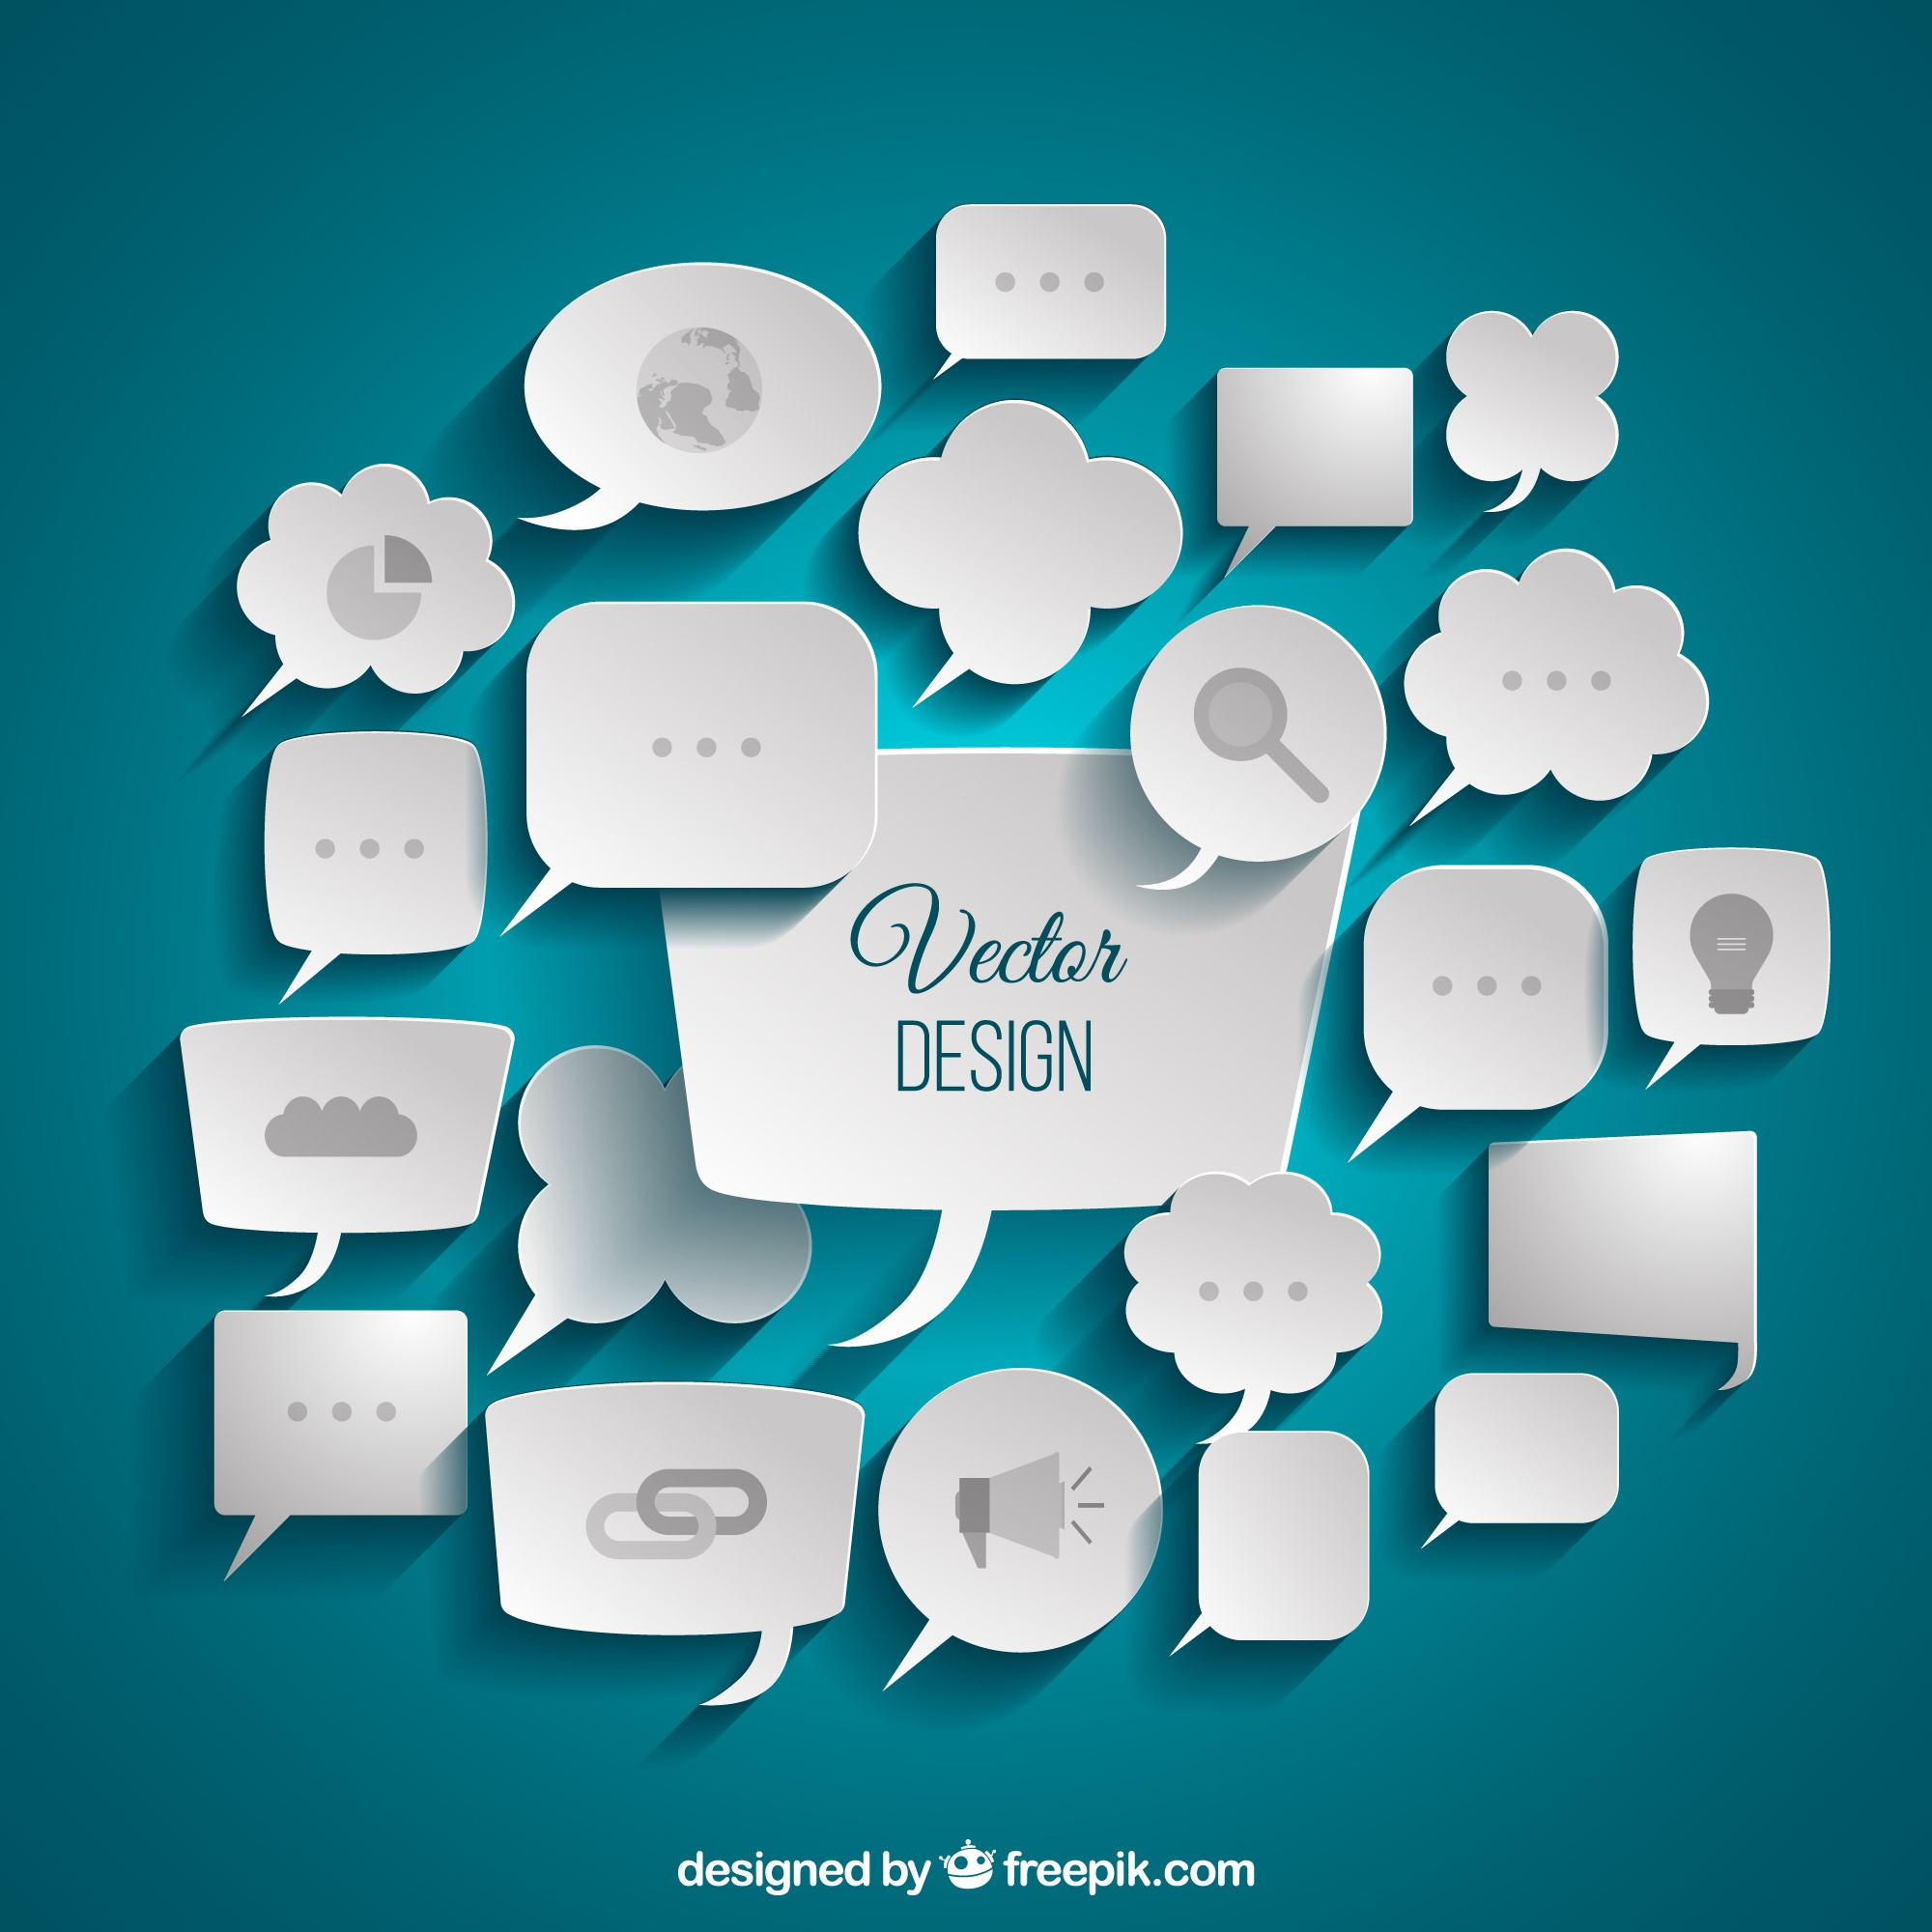 Variety of business speech bubbles